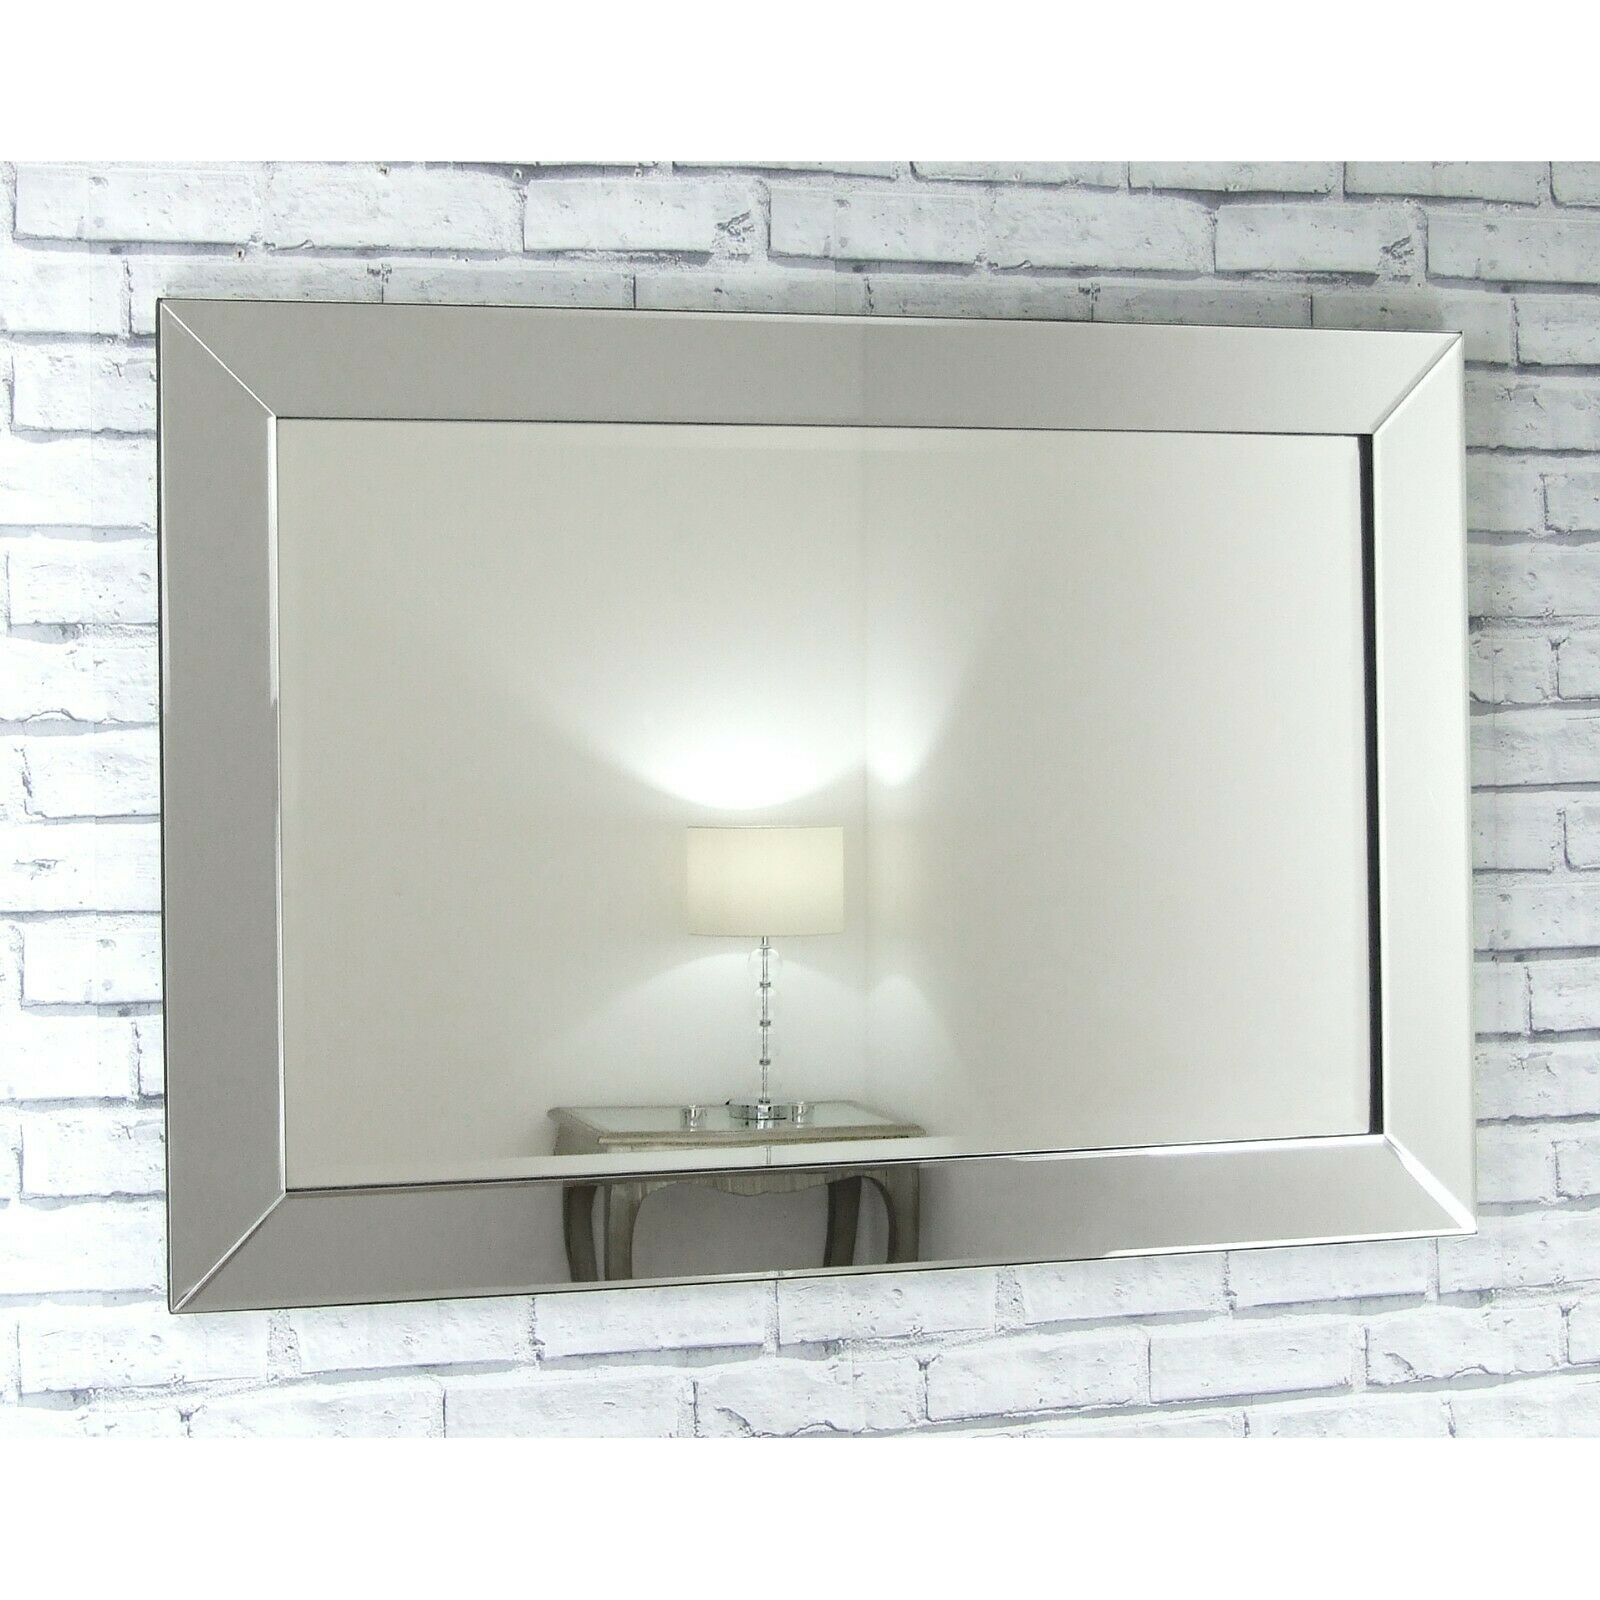 Lara Extra Large Silver Glass Rectangle Wall Mirror 48 X 32 120cm X 80cm For Sale Online Ebay